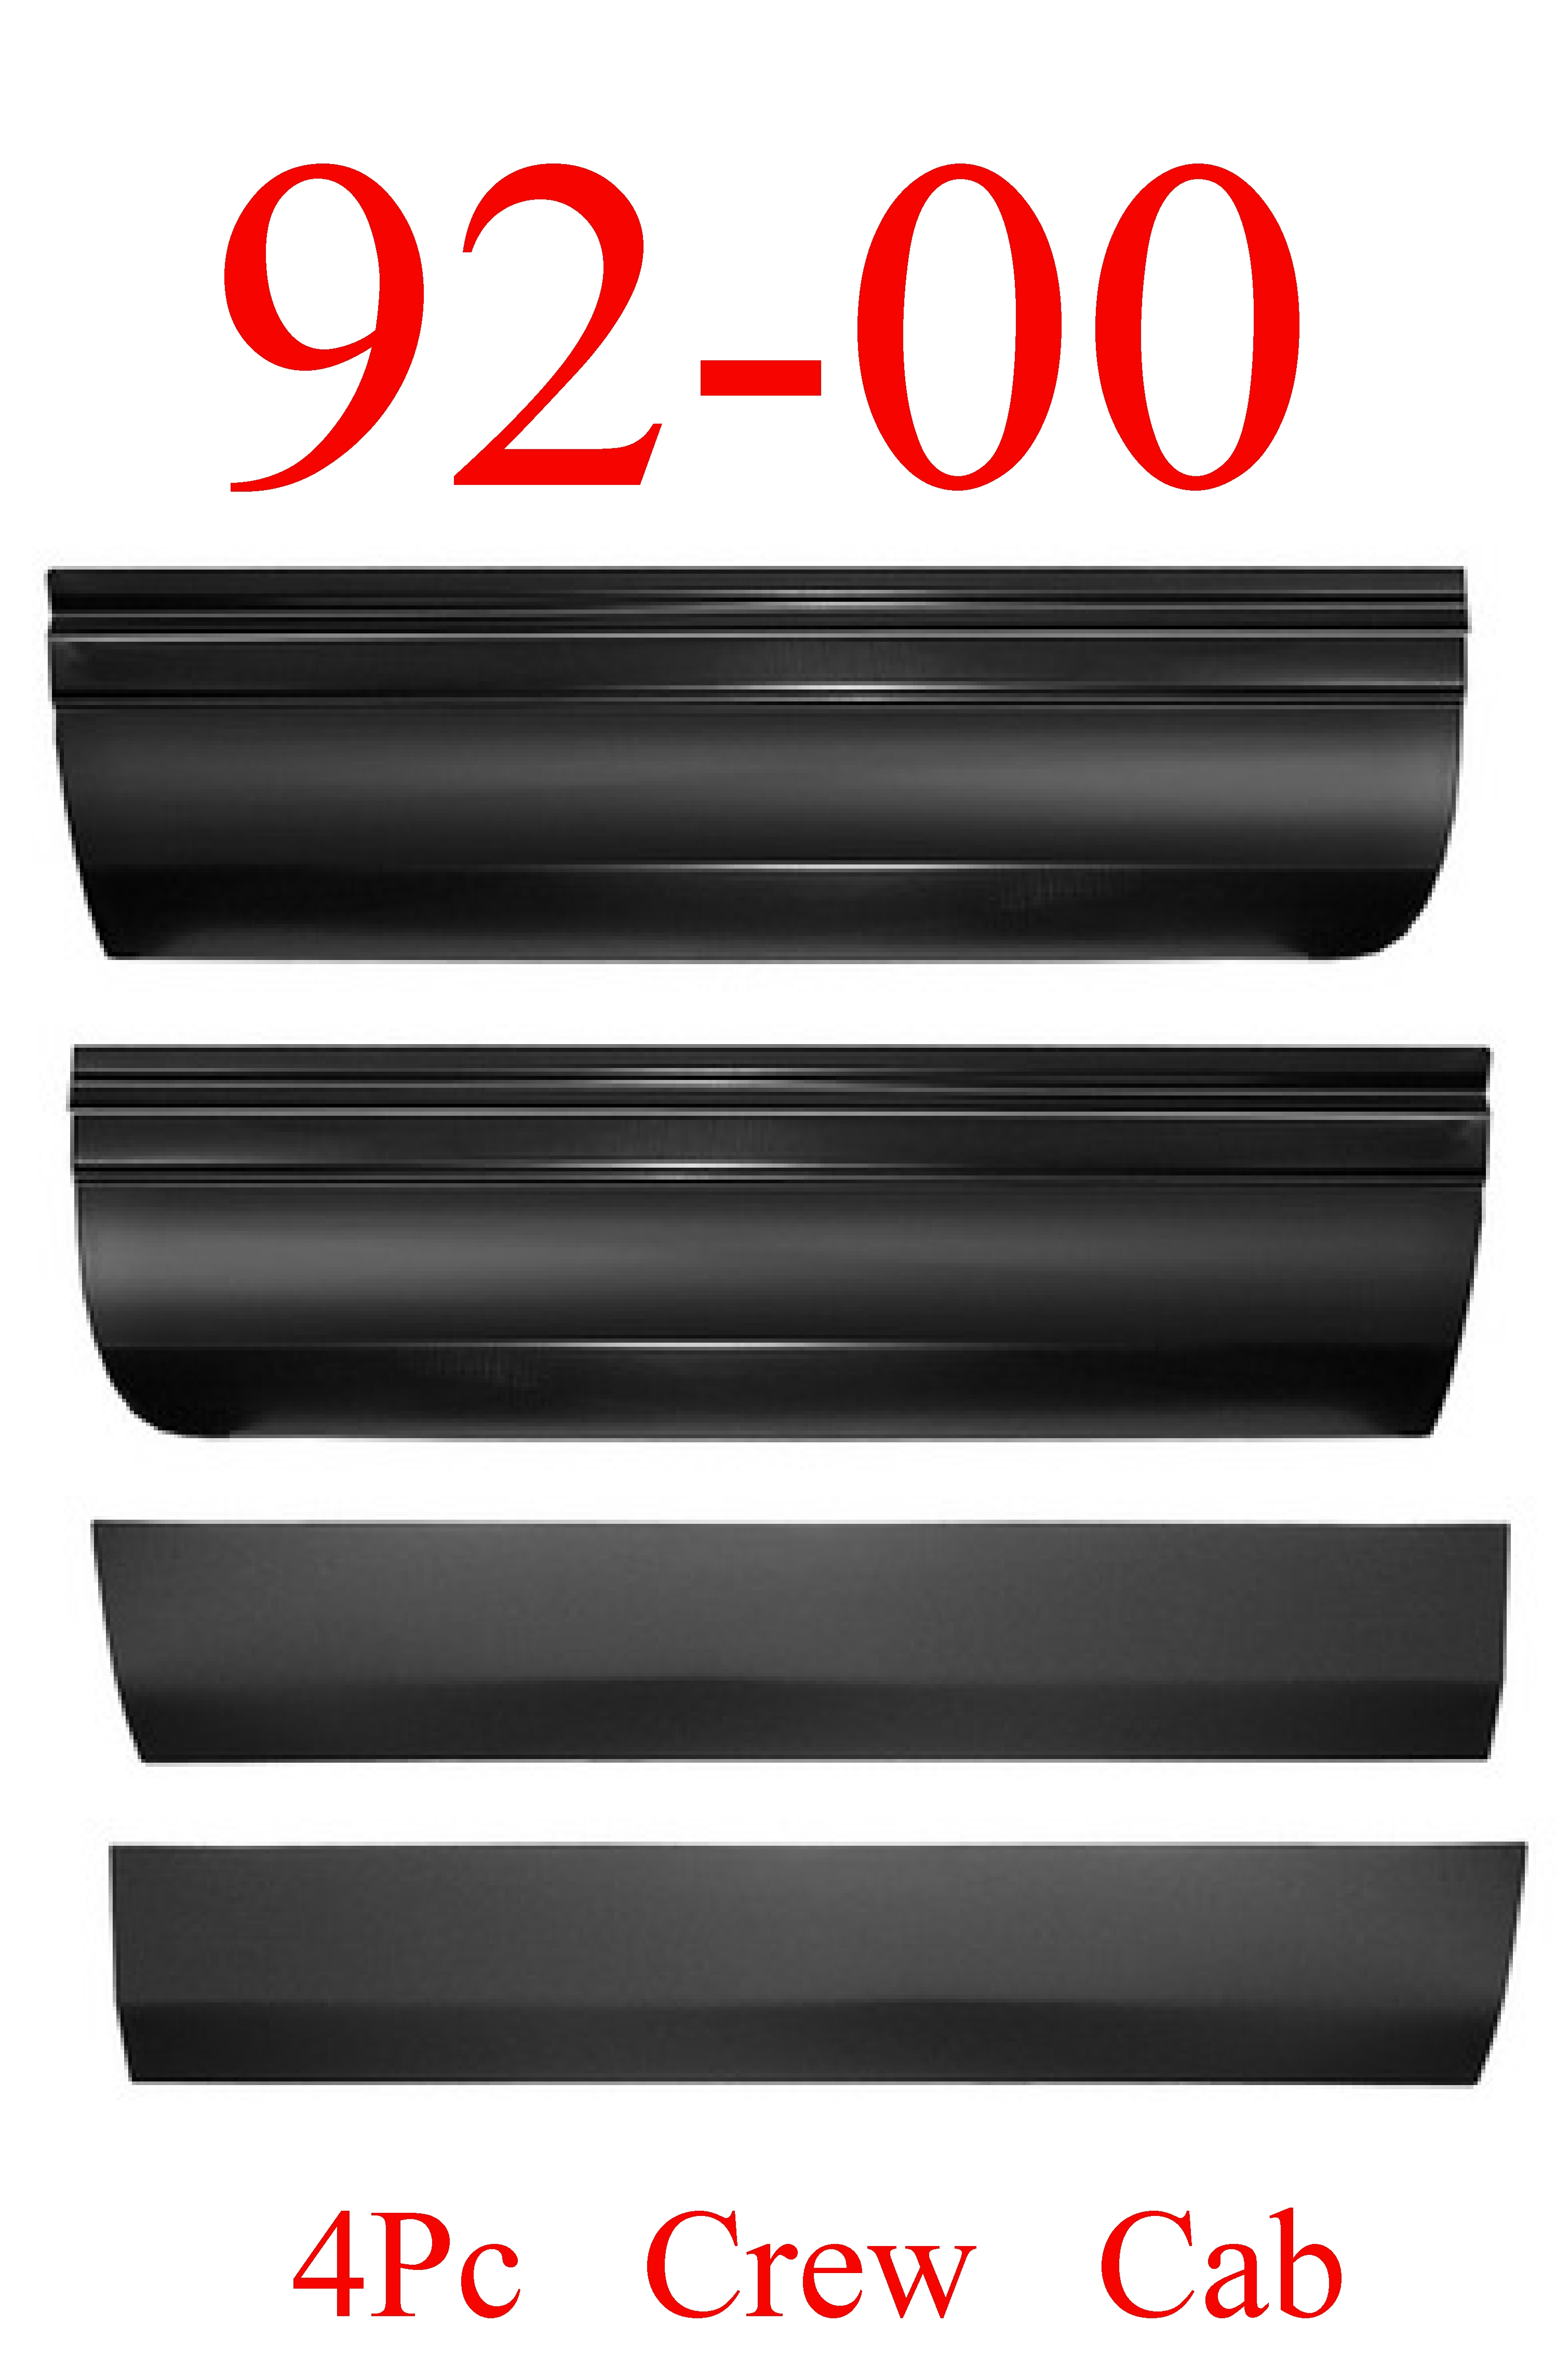 92-00 Chevy GMC Crew Cab 4Pc Lower Door Skin SET